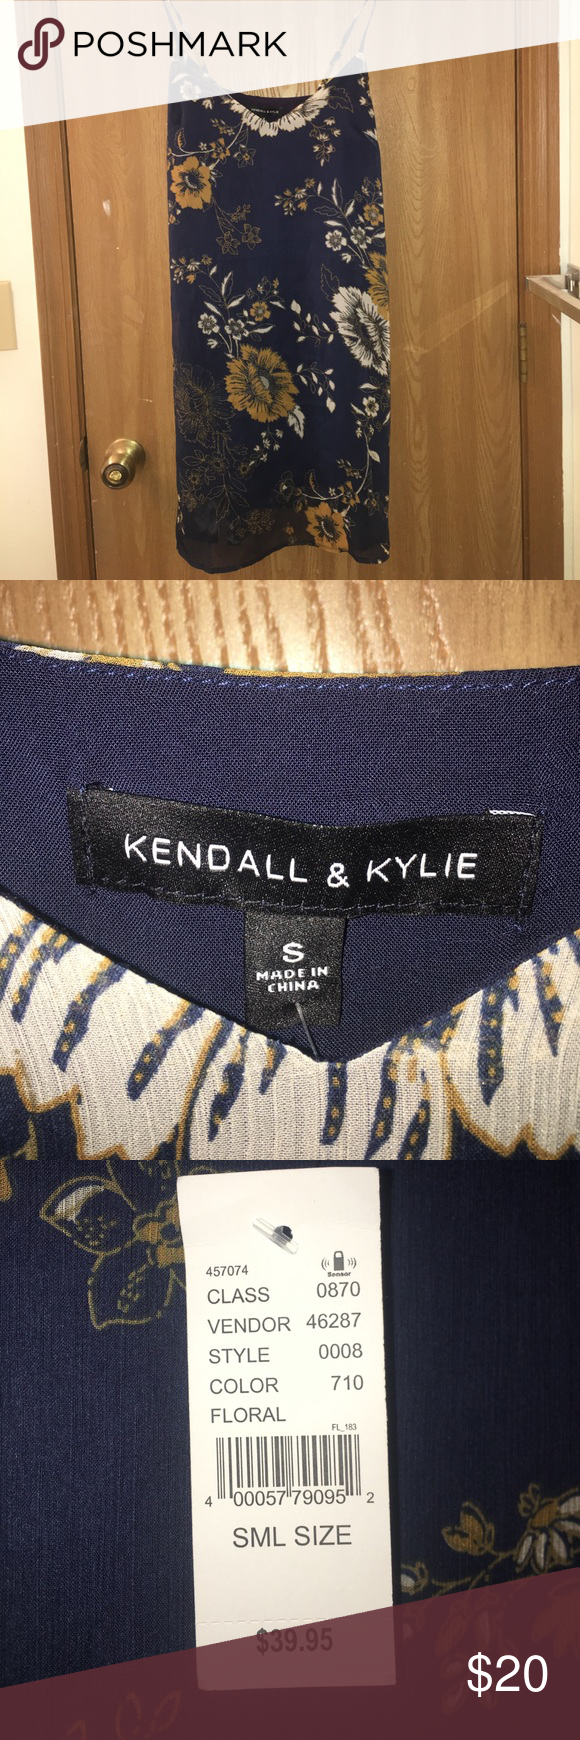 Kendall & Kylie navy blue floral slip dress Navy blue floral dress! Never worn. Brand new with tags! Kendall & Kylie Dresses Mini